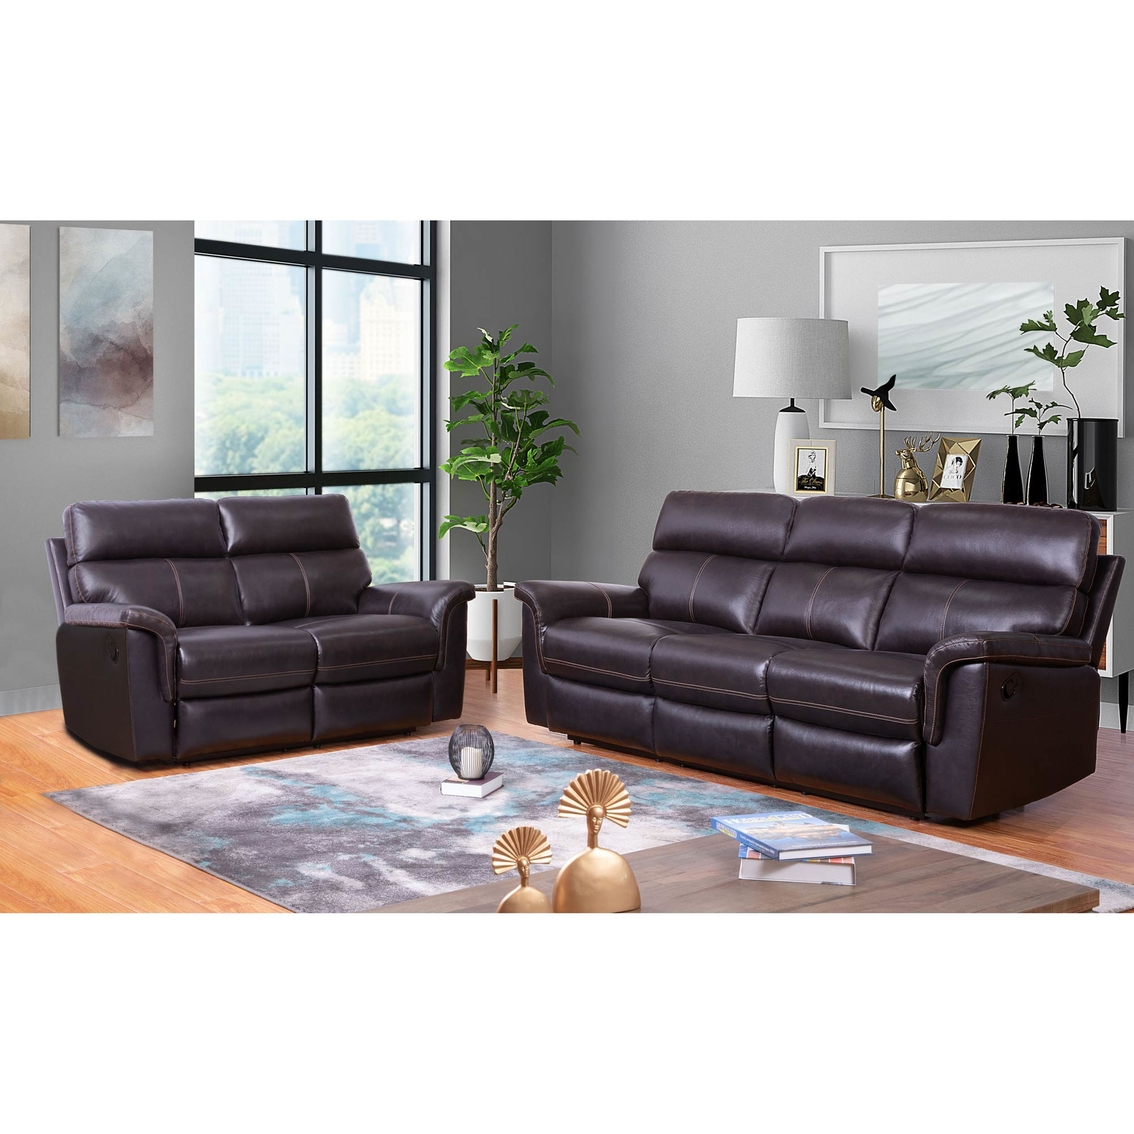 Outstanding Abbyson Wakefield Top Grain Leather Sofa And Loveseat Unemploymentrelief Wooden Chair Designs For Living Room Unemploymentrelieforg